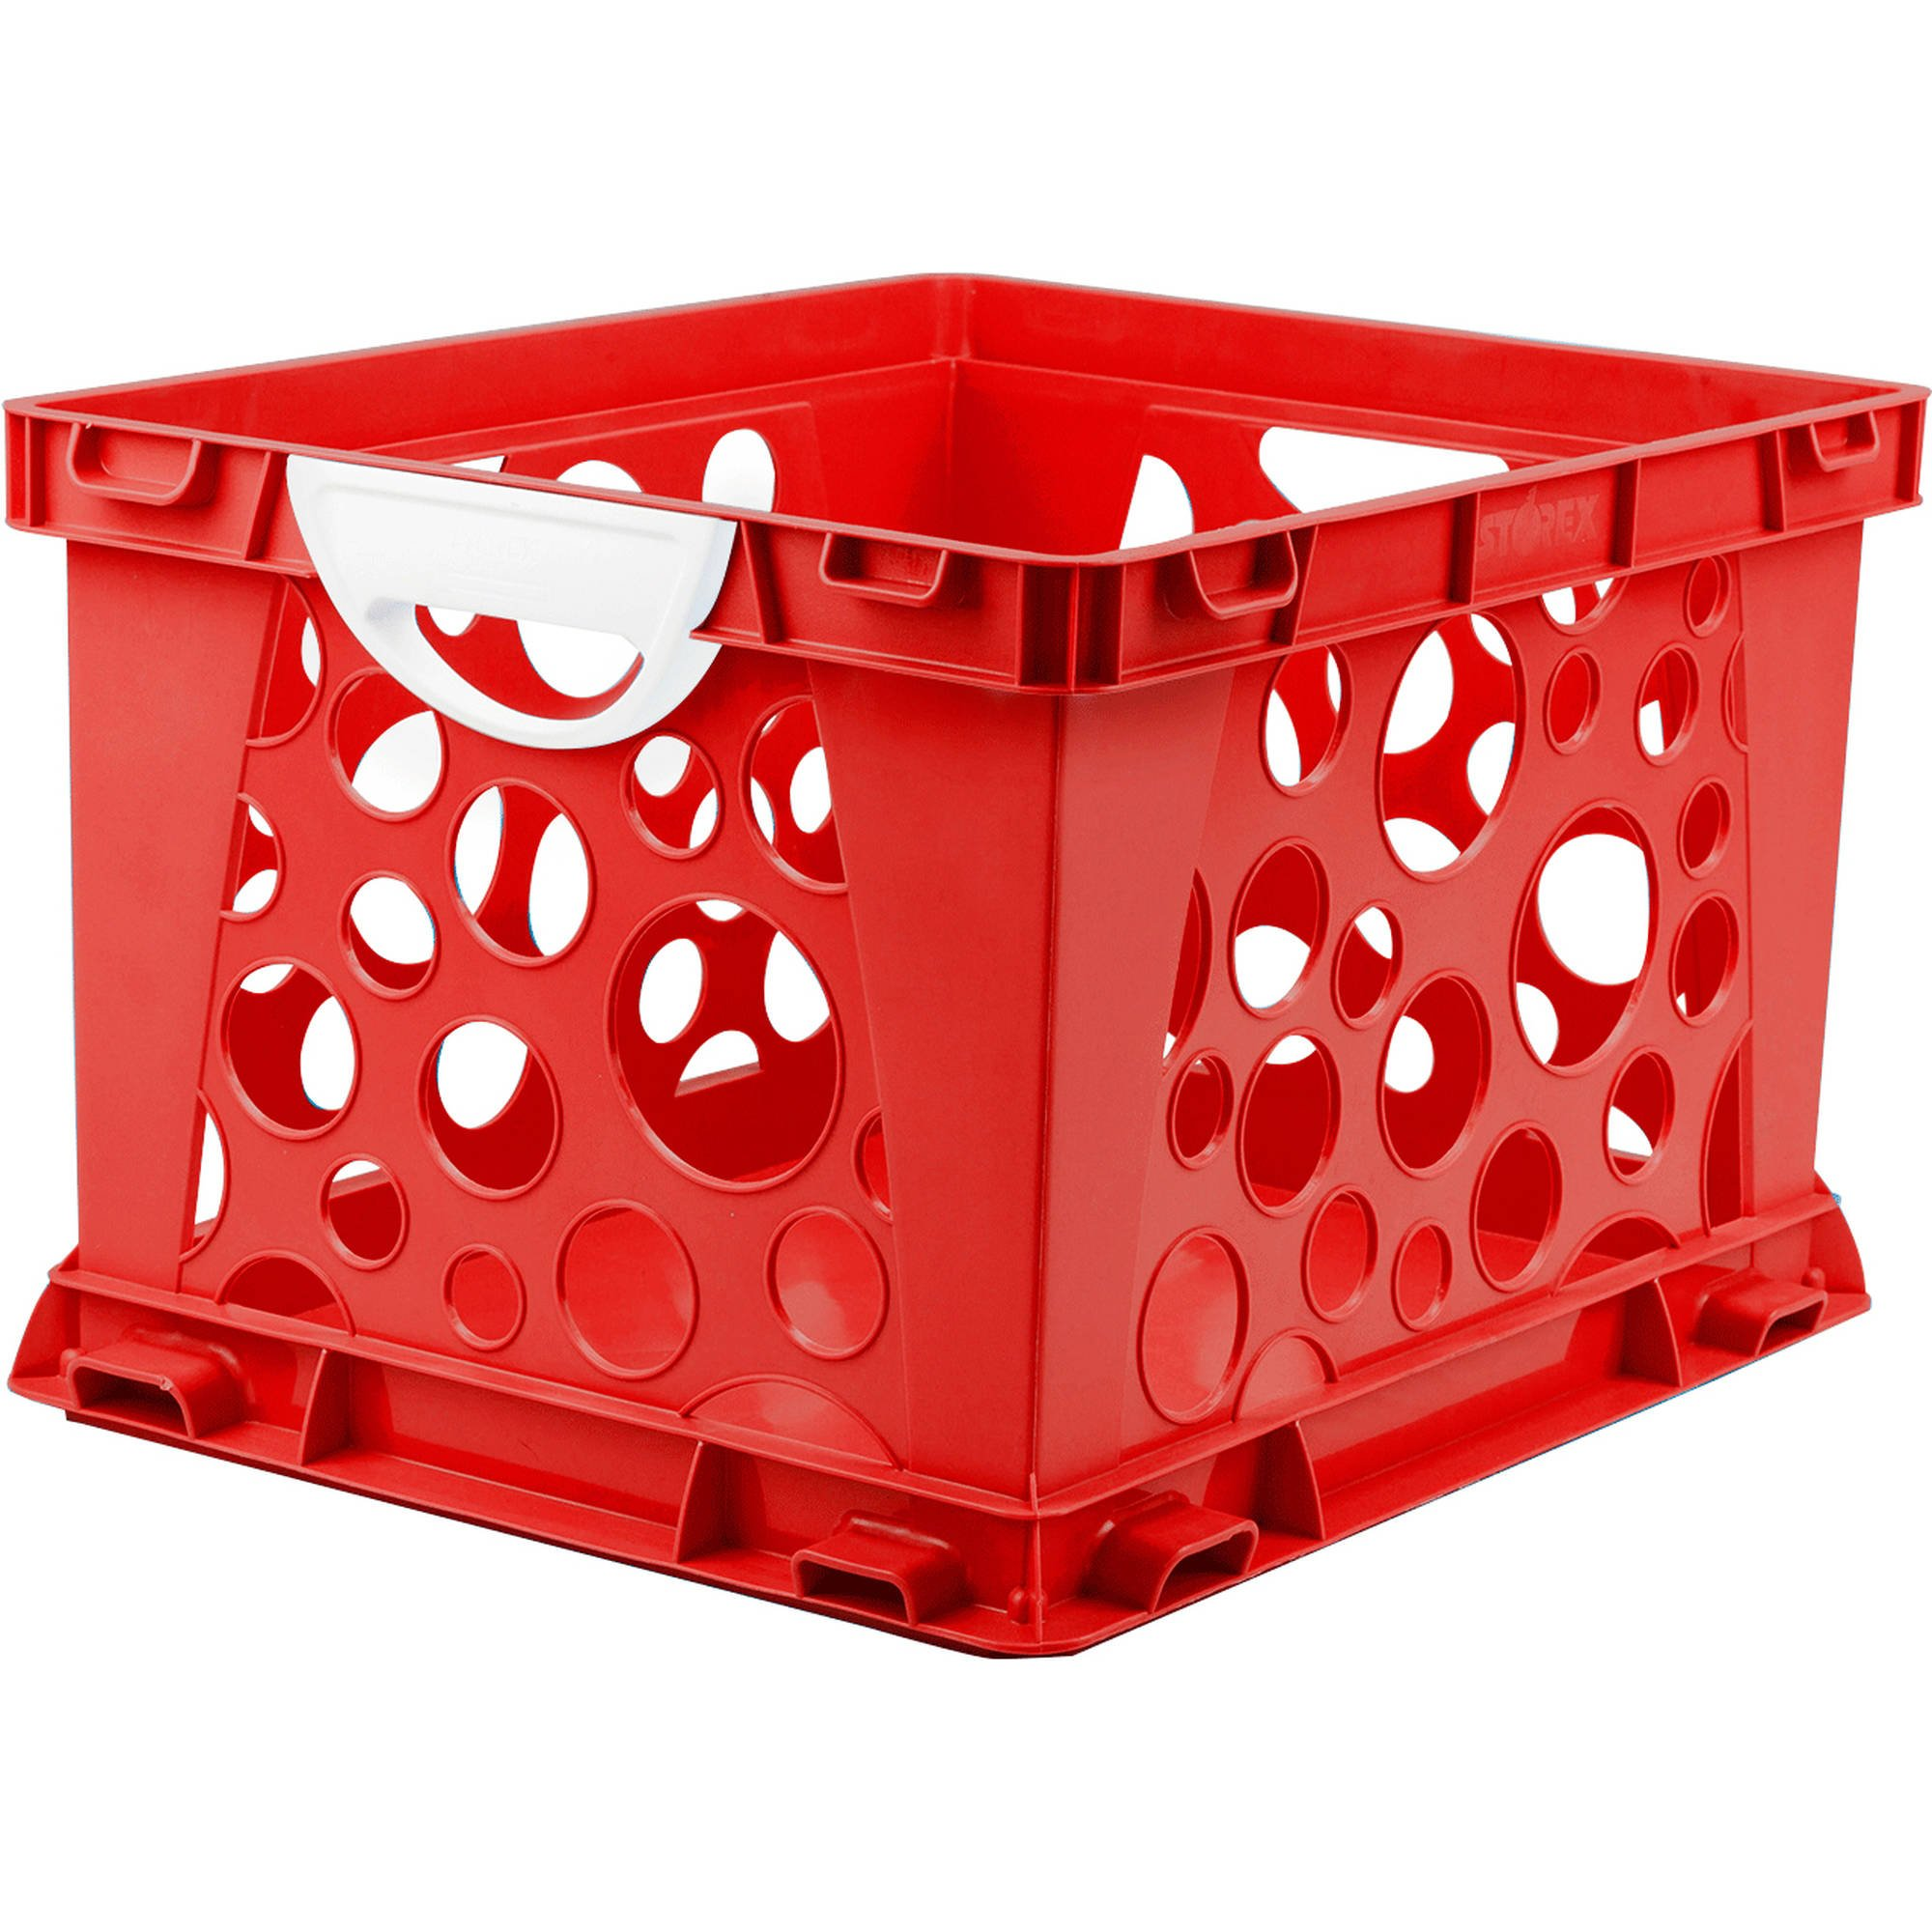 Indoor Large File Crate Storage with Handles, in Red Color ( 3 PACK )